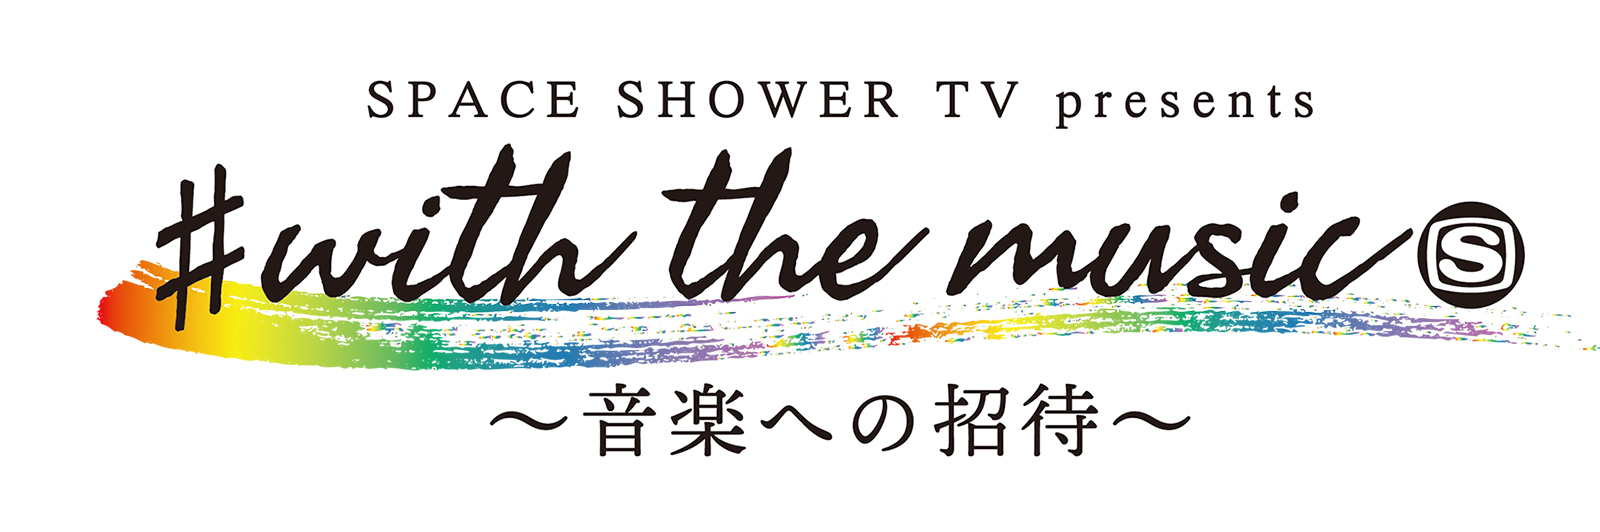 「SPACE SHOWER TV presents #with the music 音楽への招待 」